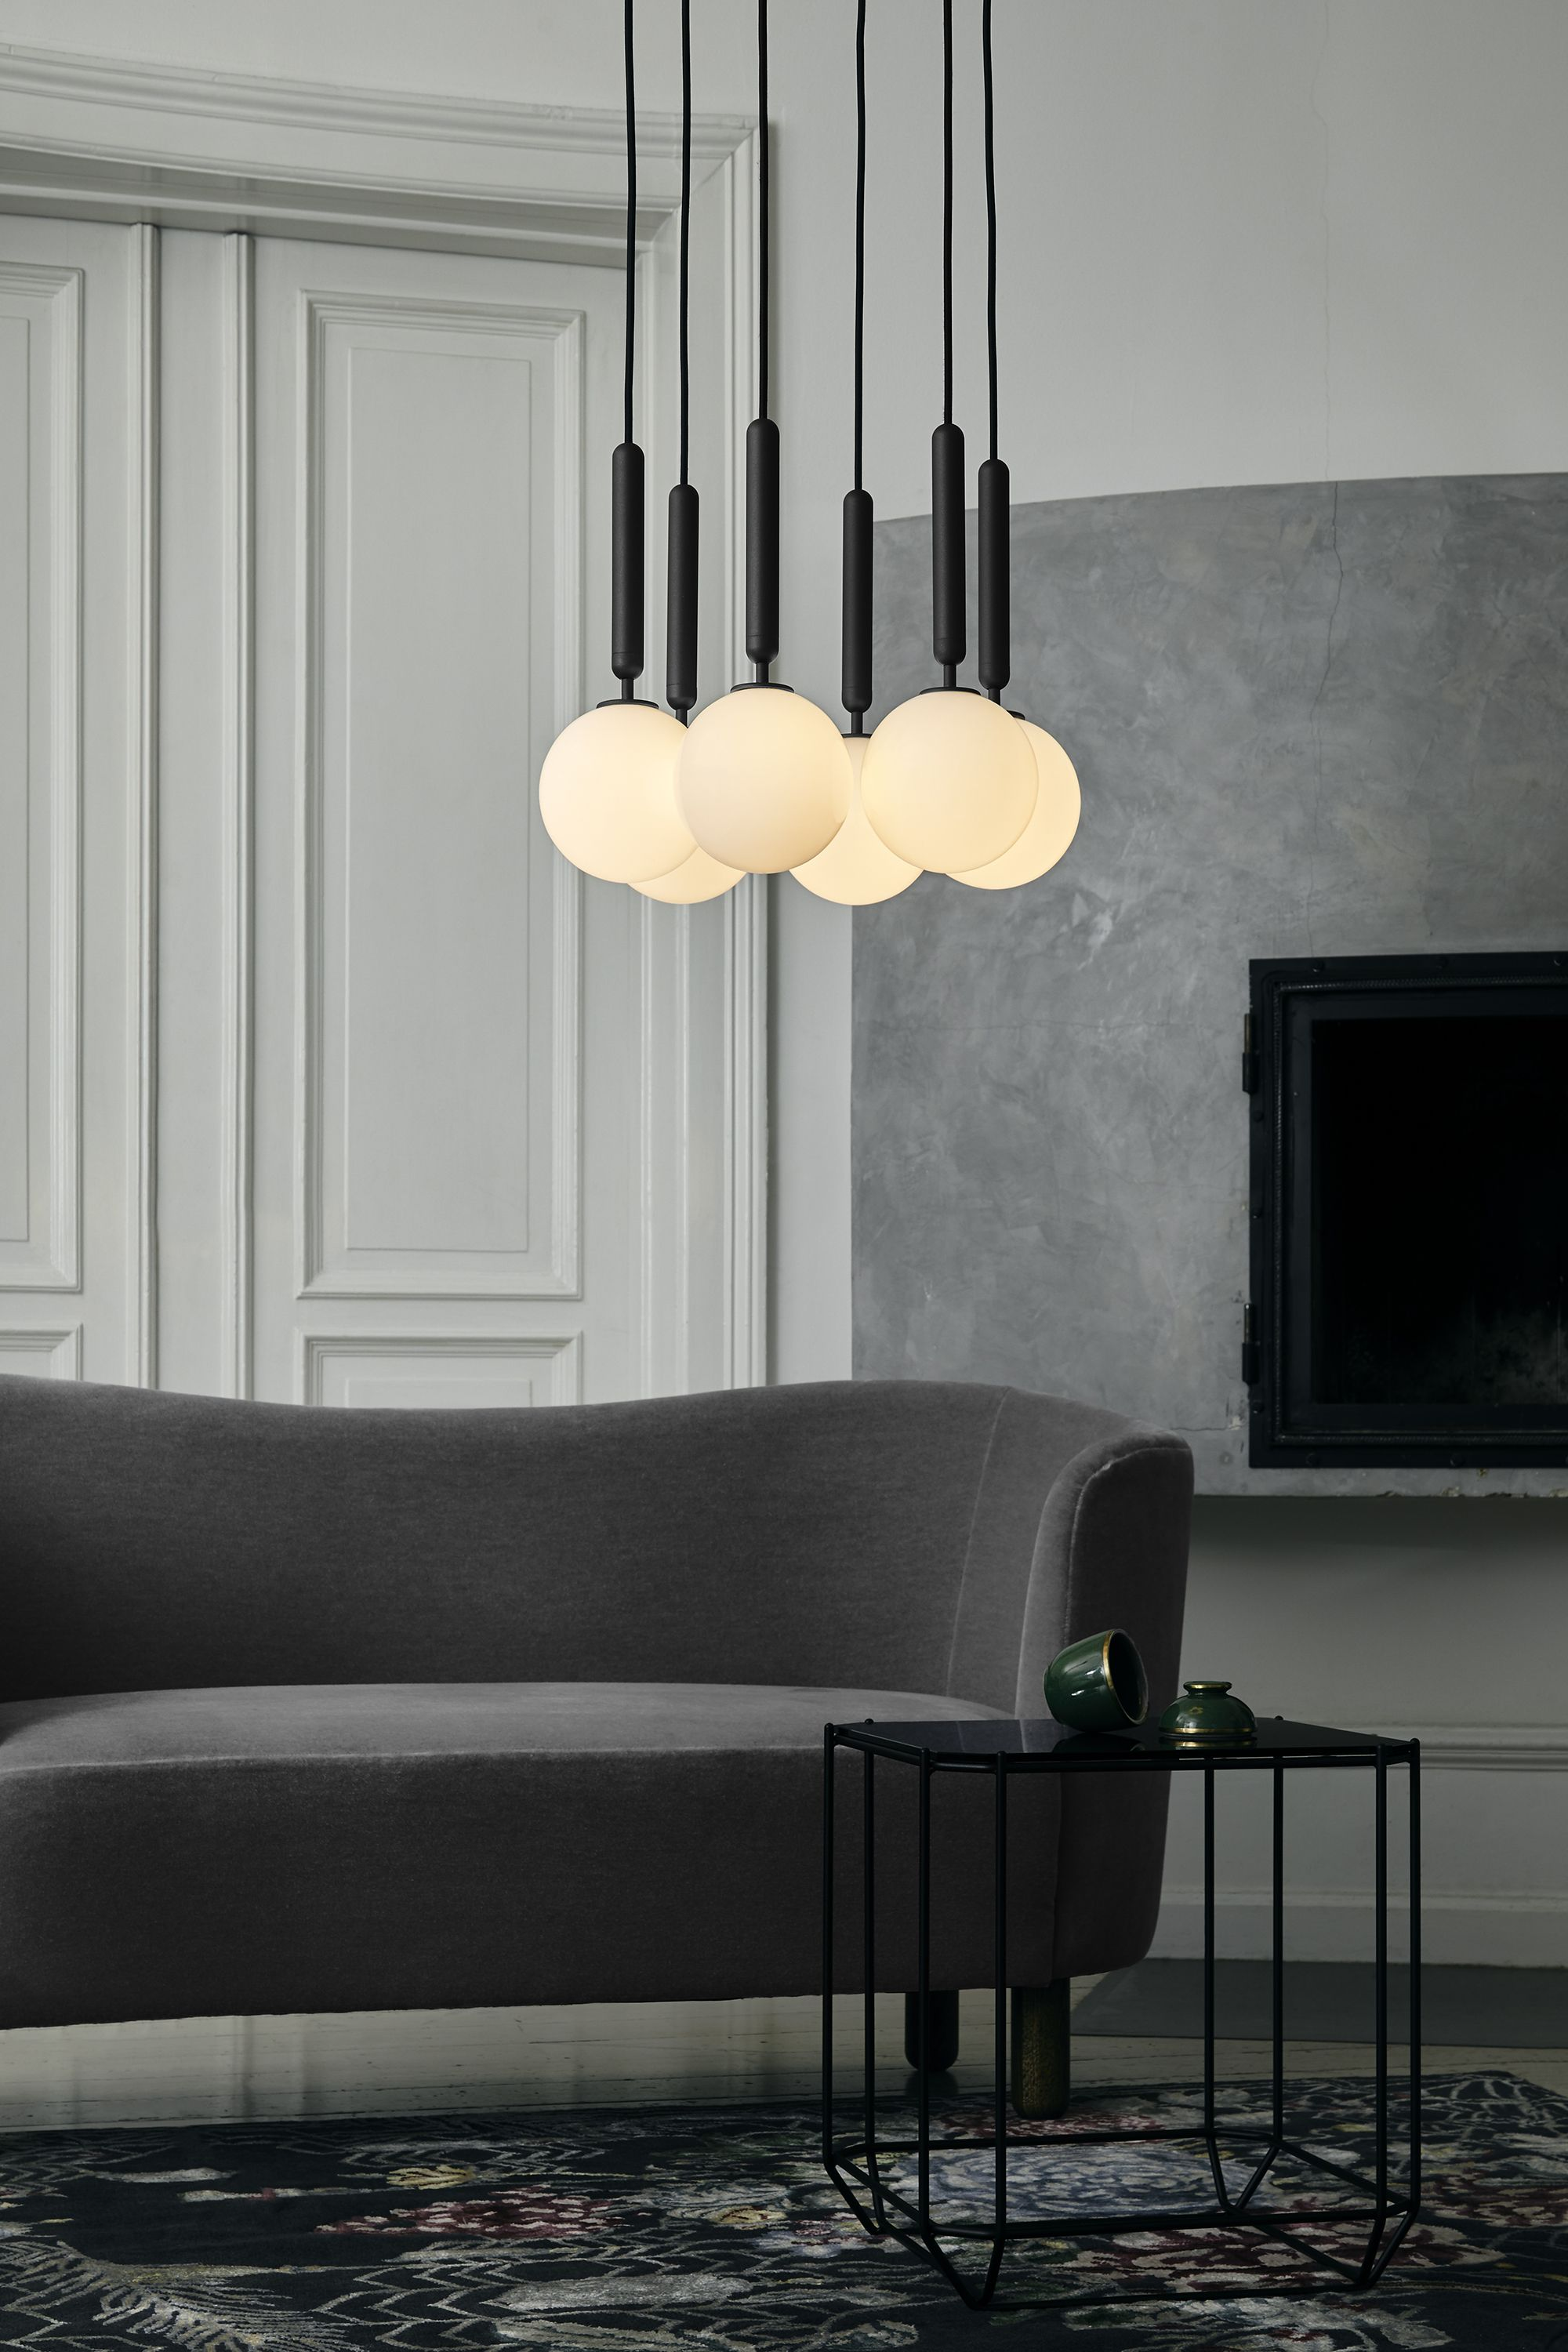 Miira 6 by nuura the unique and nordic lighting collection miira is created in a simple and timeless design the lamps complement each other